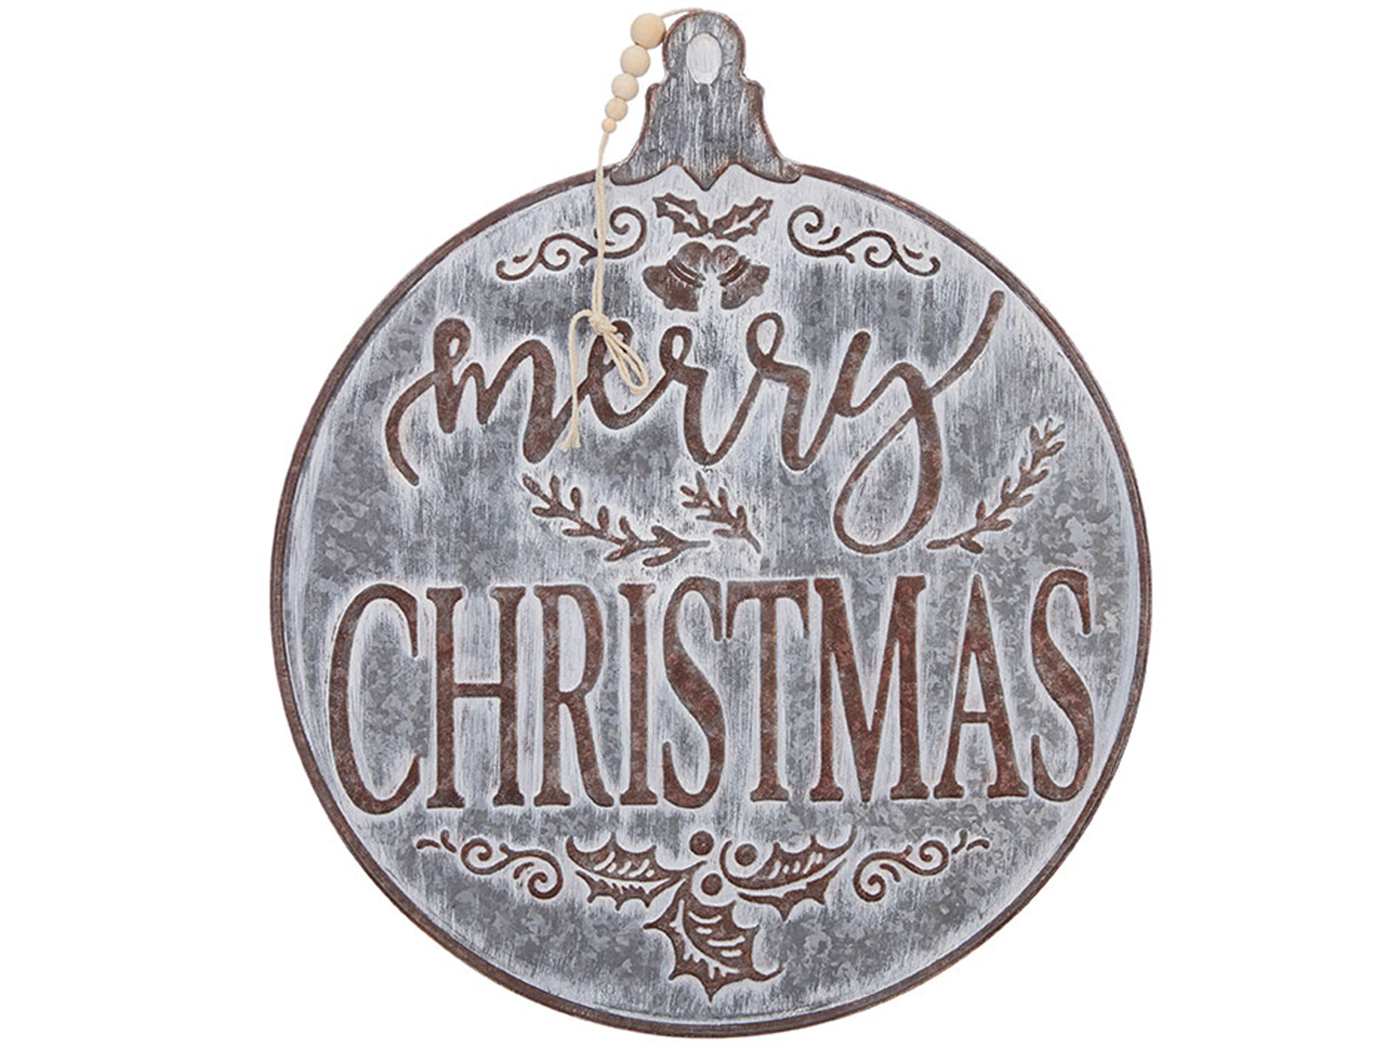 Galvanized Iron Merry Christmas Ornament Wall Decor 19""